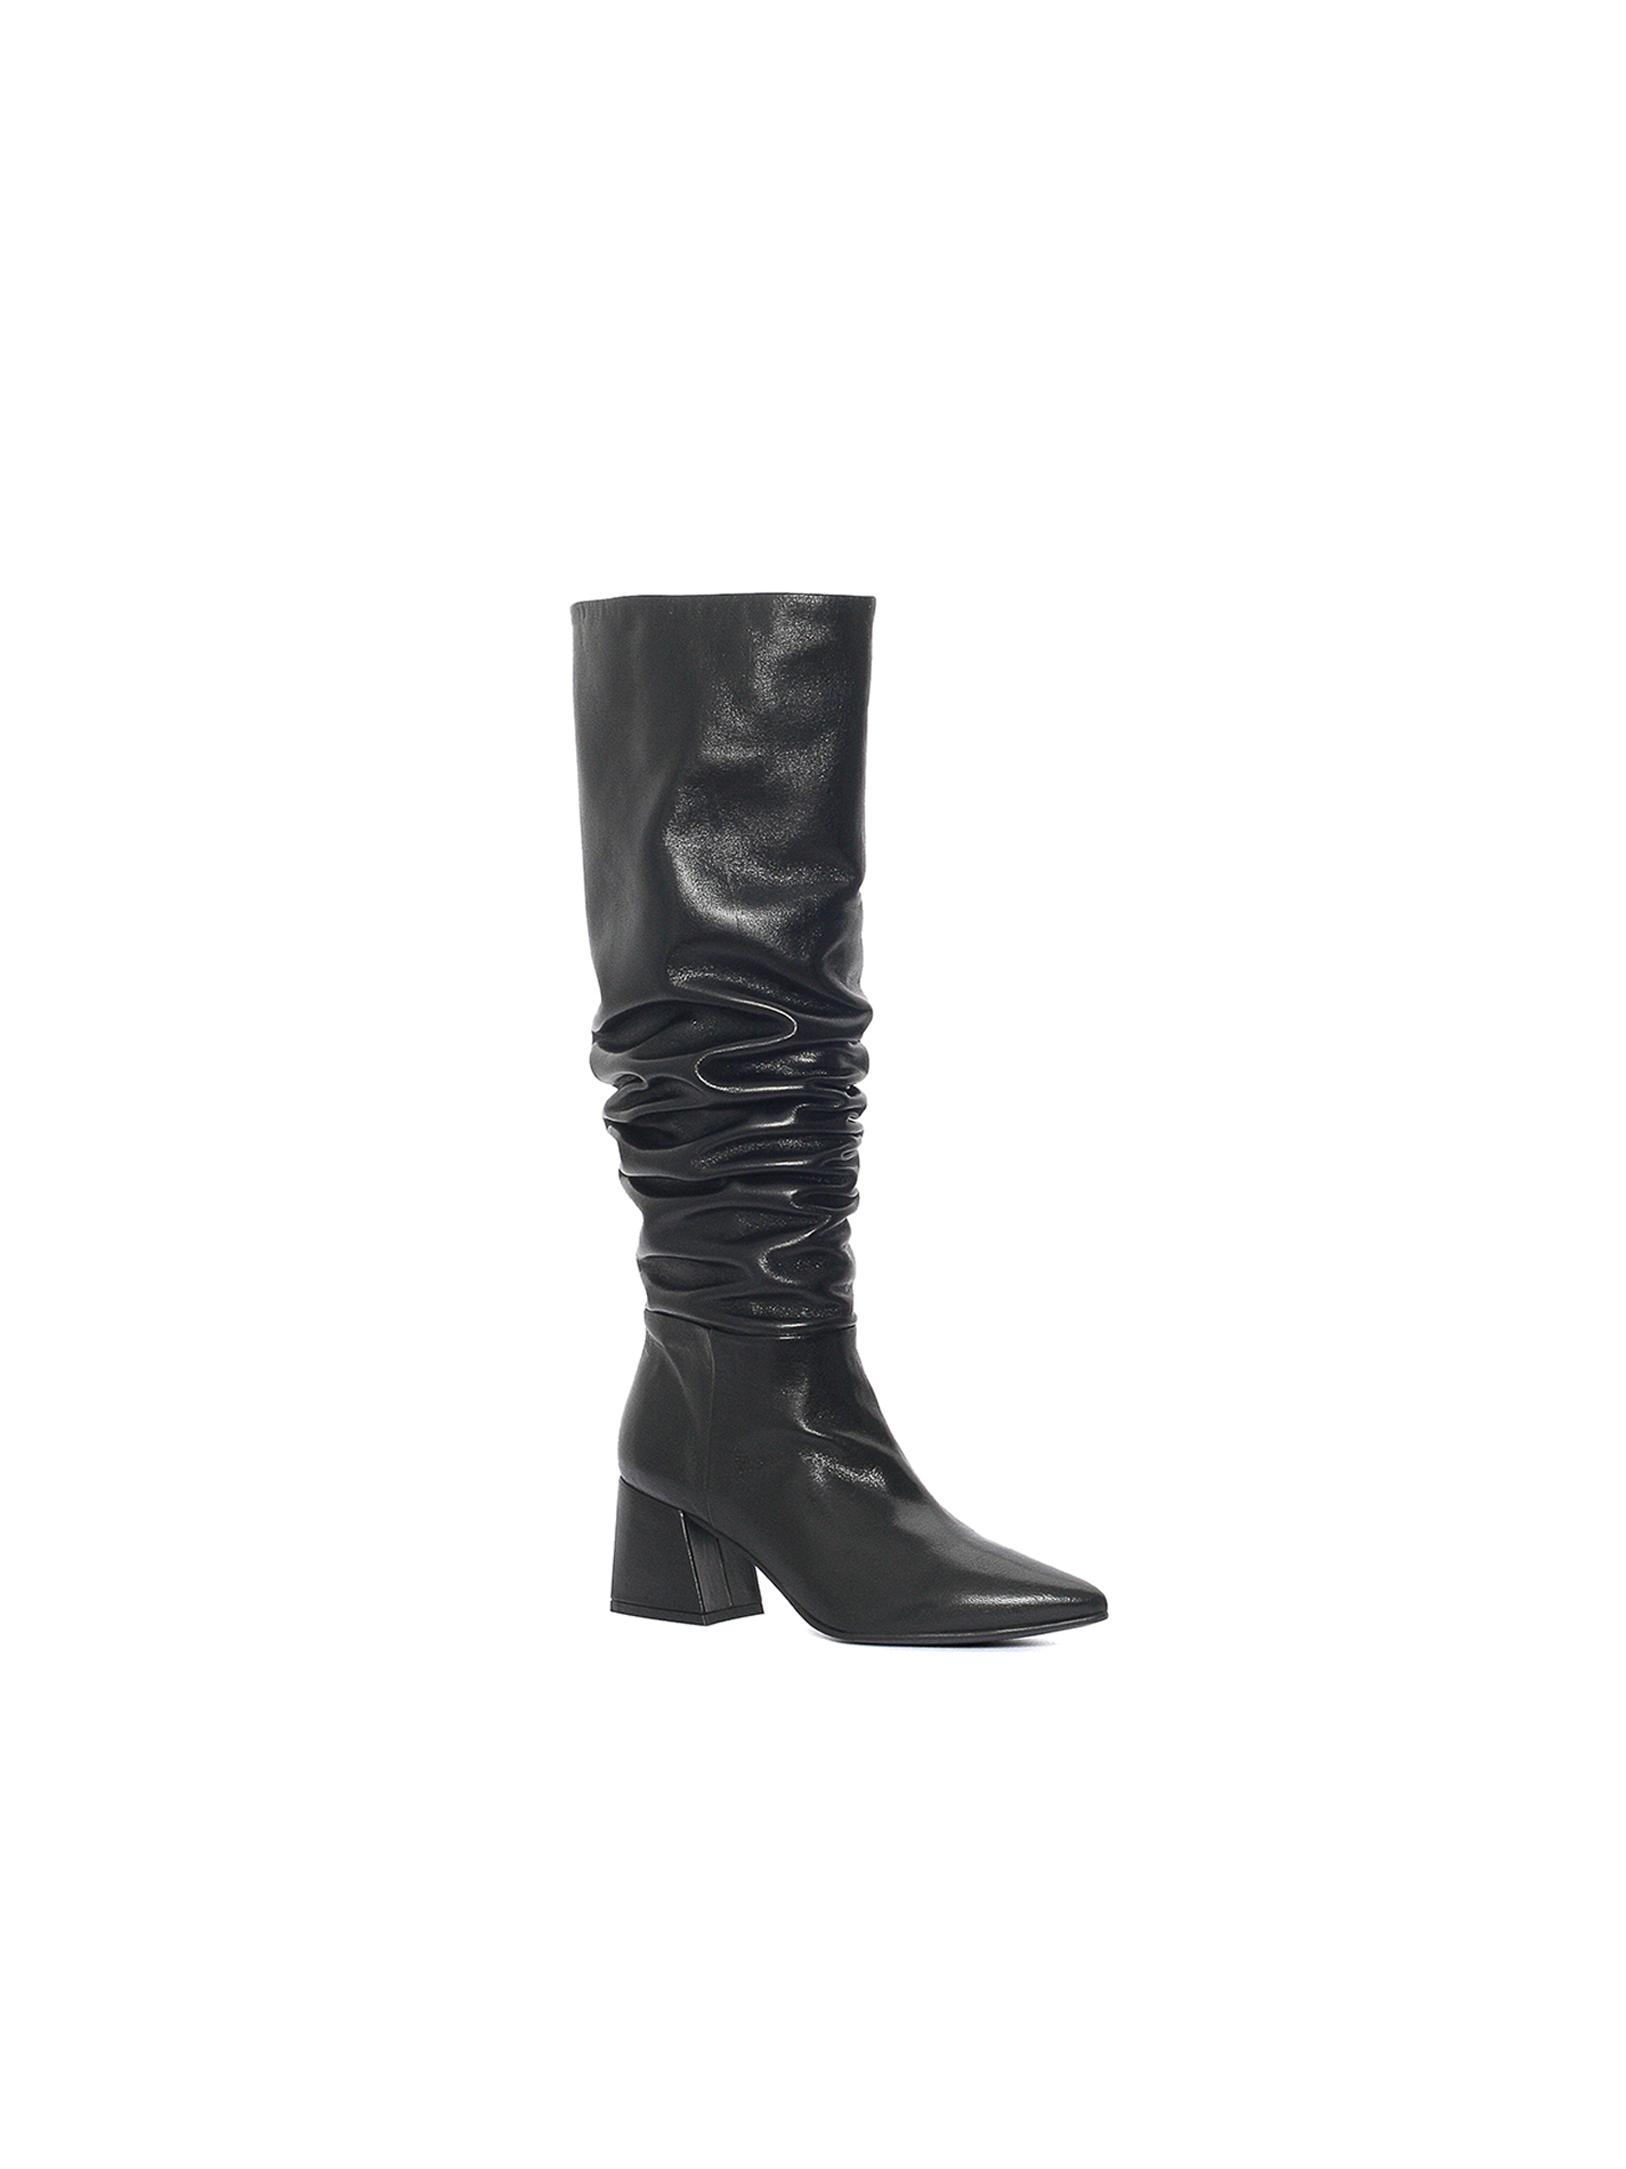 BLACK TEQUILA BOOT